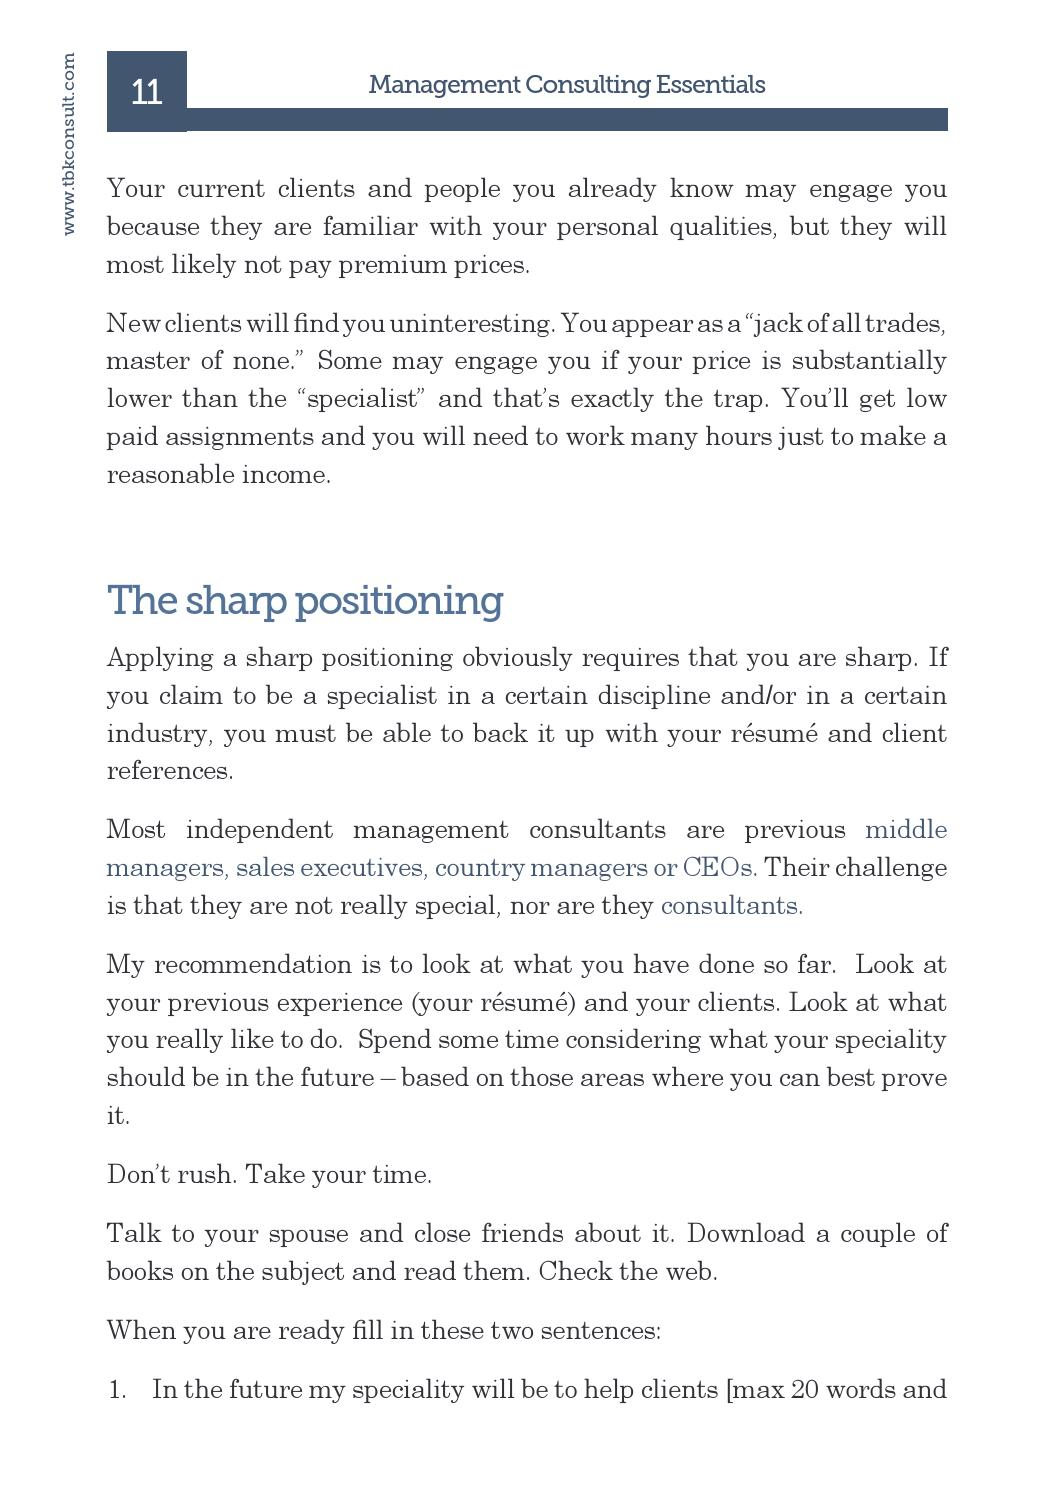 Fine Couples Management Resume Image - Best Resume Examples by ...